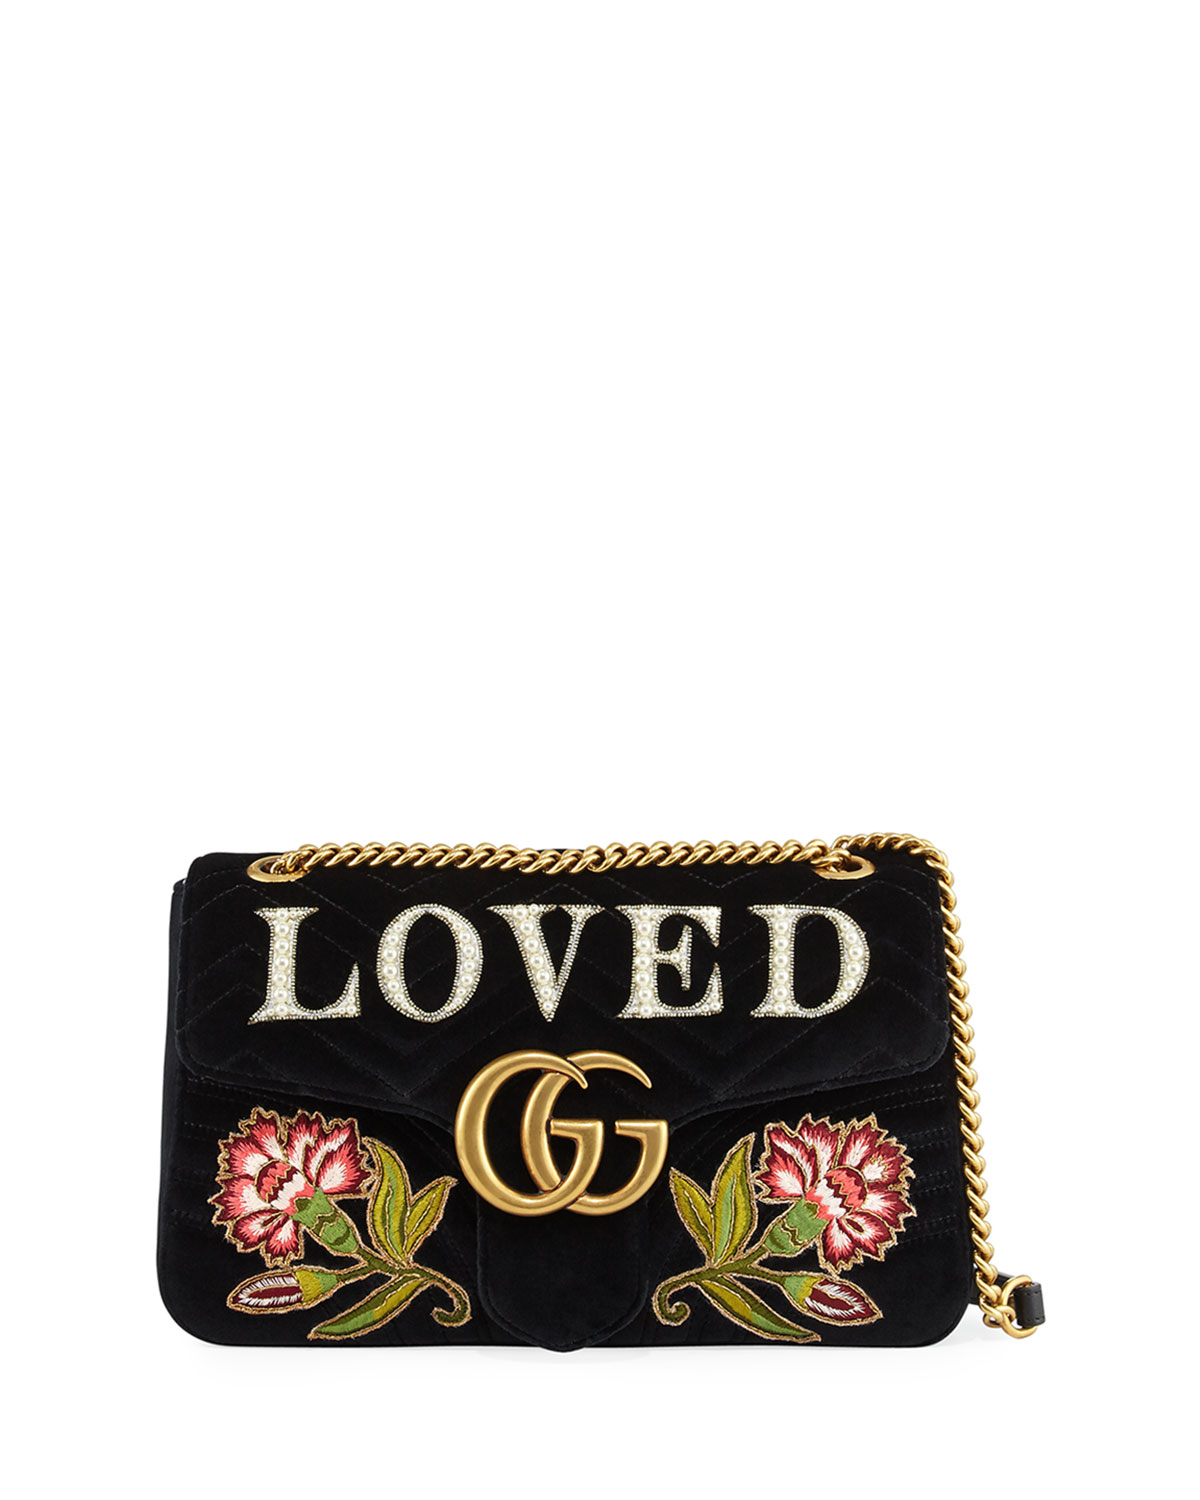 36564827f06 Gucci GG Marmont Medium Embroidered Velvet Shoulder Bag